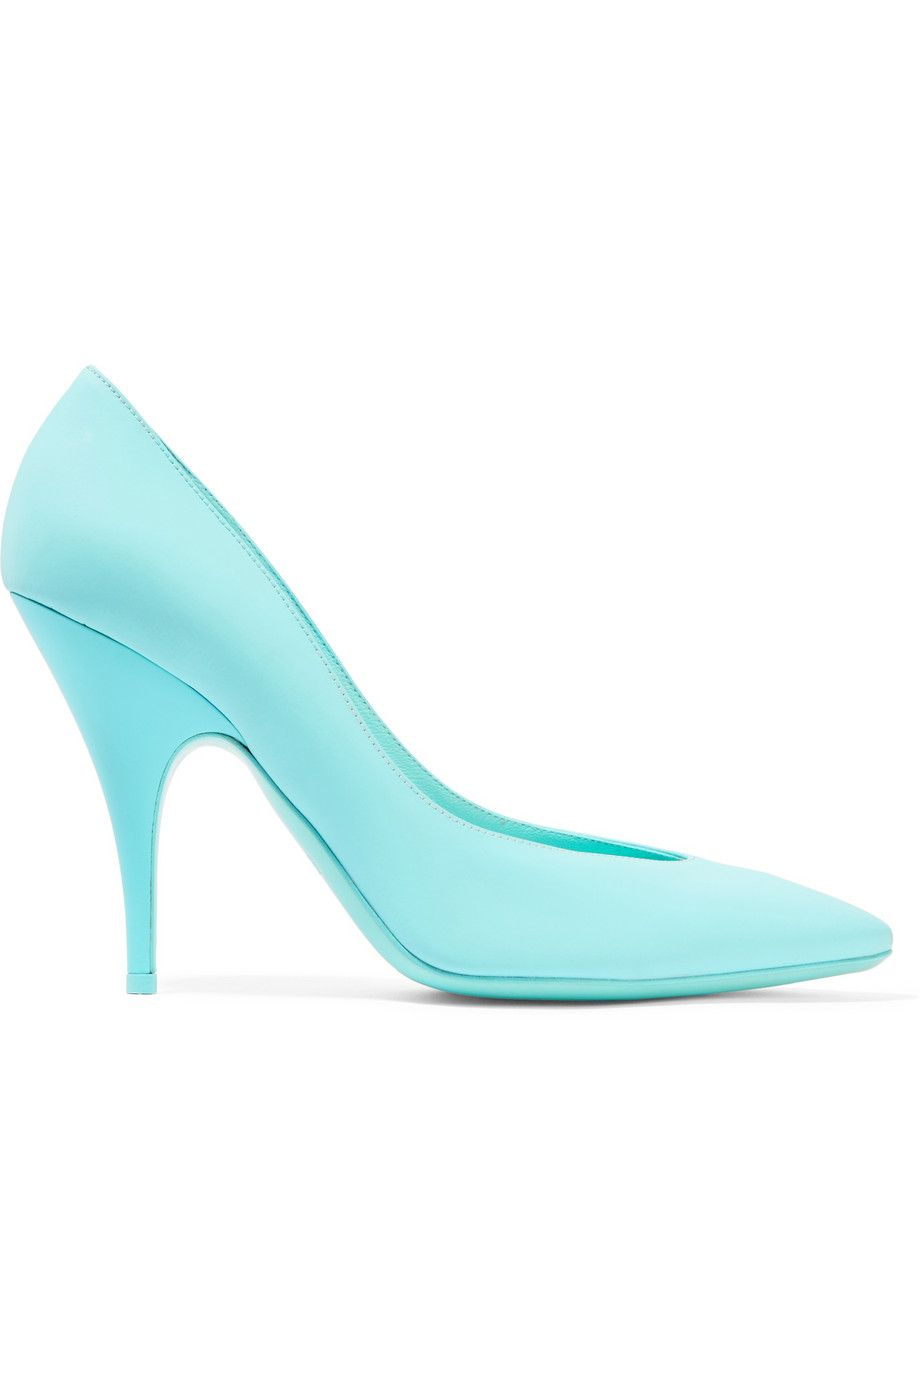 MOSCHINO Neon Leather Pumps. #moschino #shoes #pumps